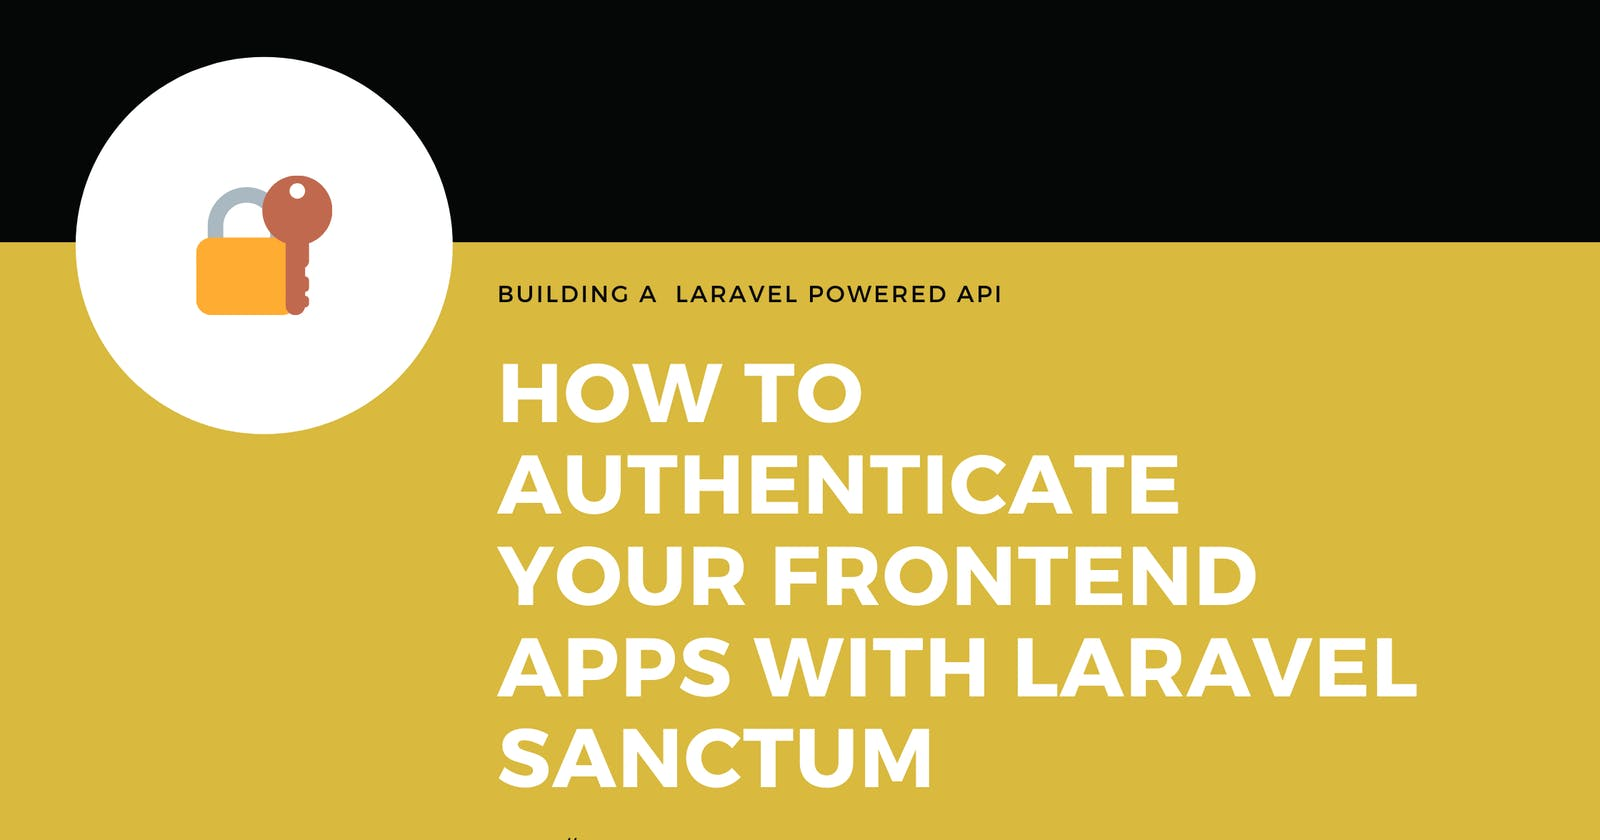 How to authenticate your frontend apps with Laravel Sanctum